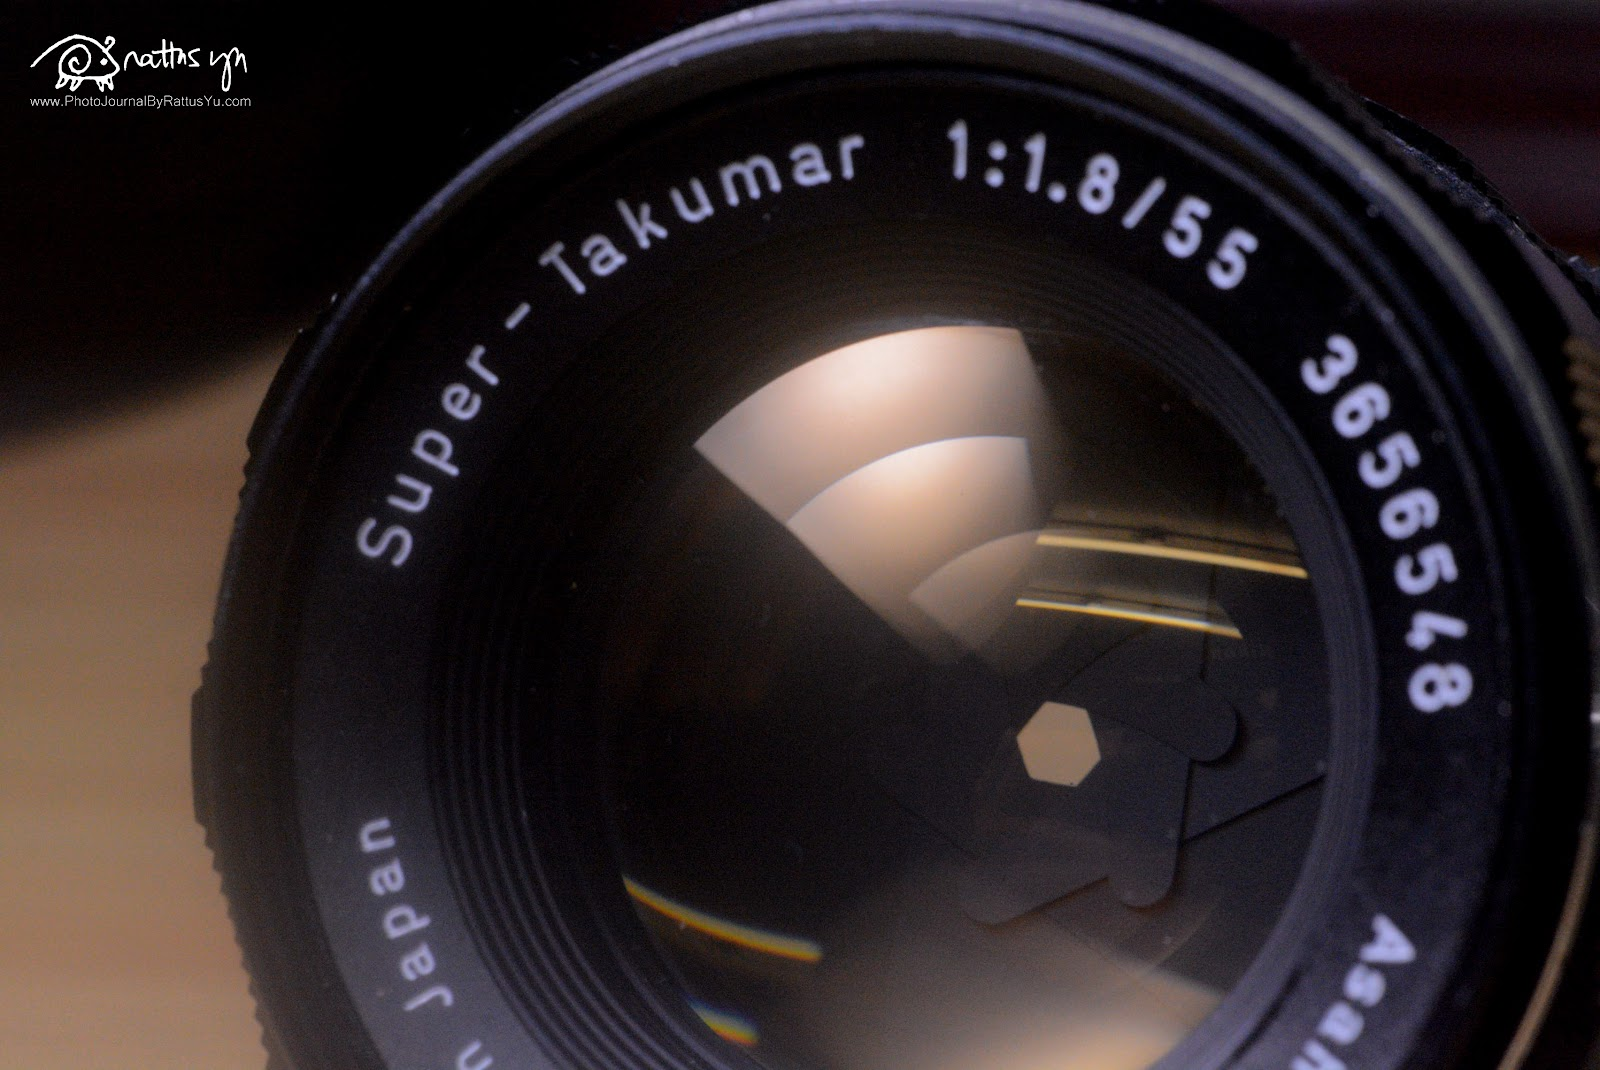 Super-Takumar 55mm f/1.8 (M42)